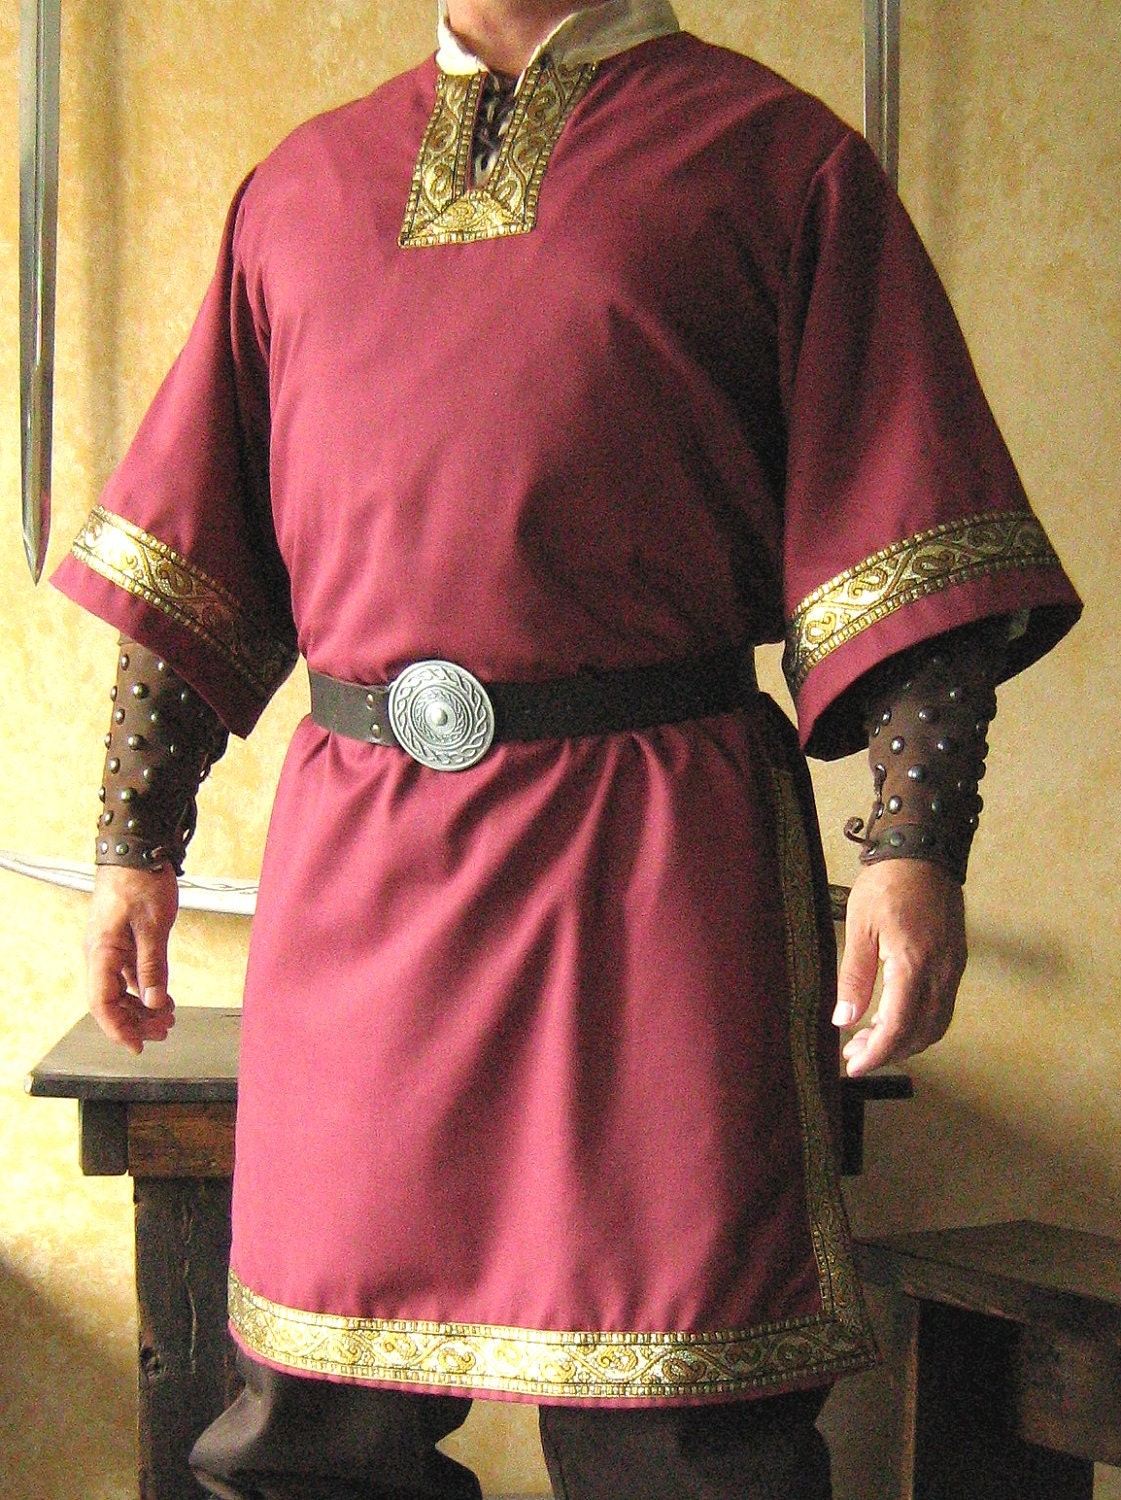 Medieval Celtic Viking Mid Arms Sleeves By Morganascollection